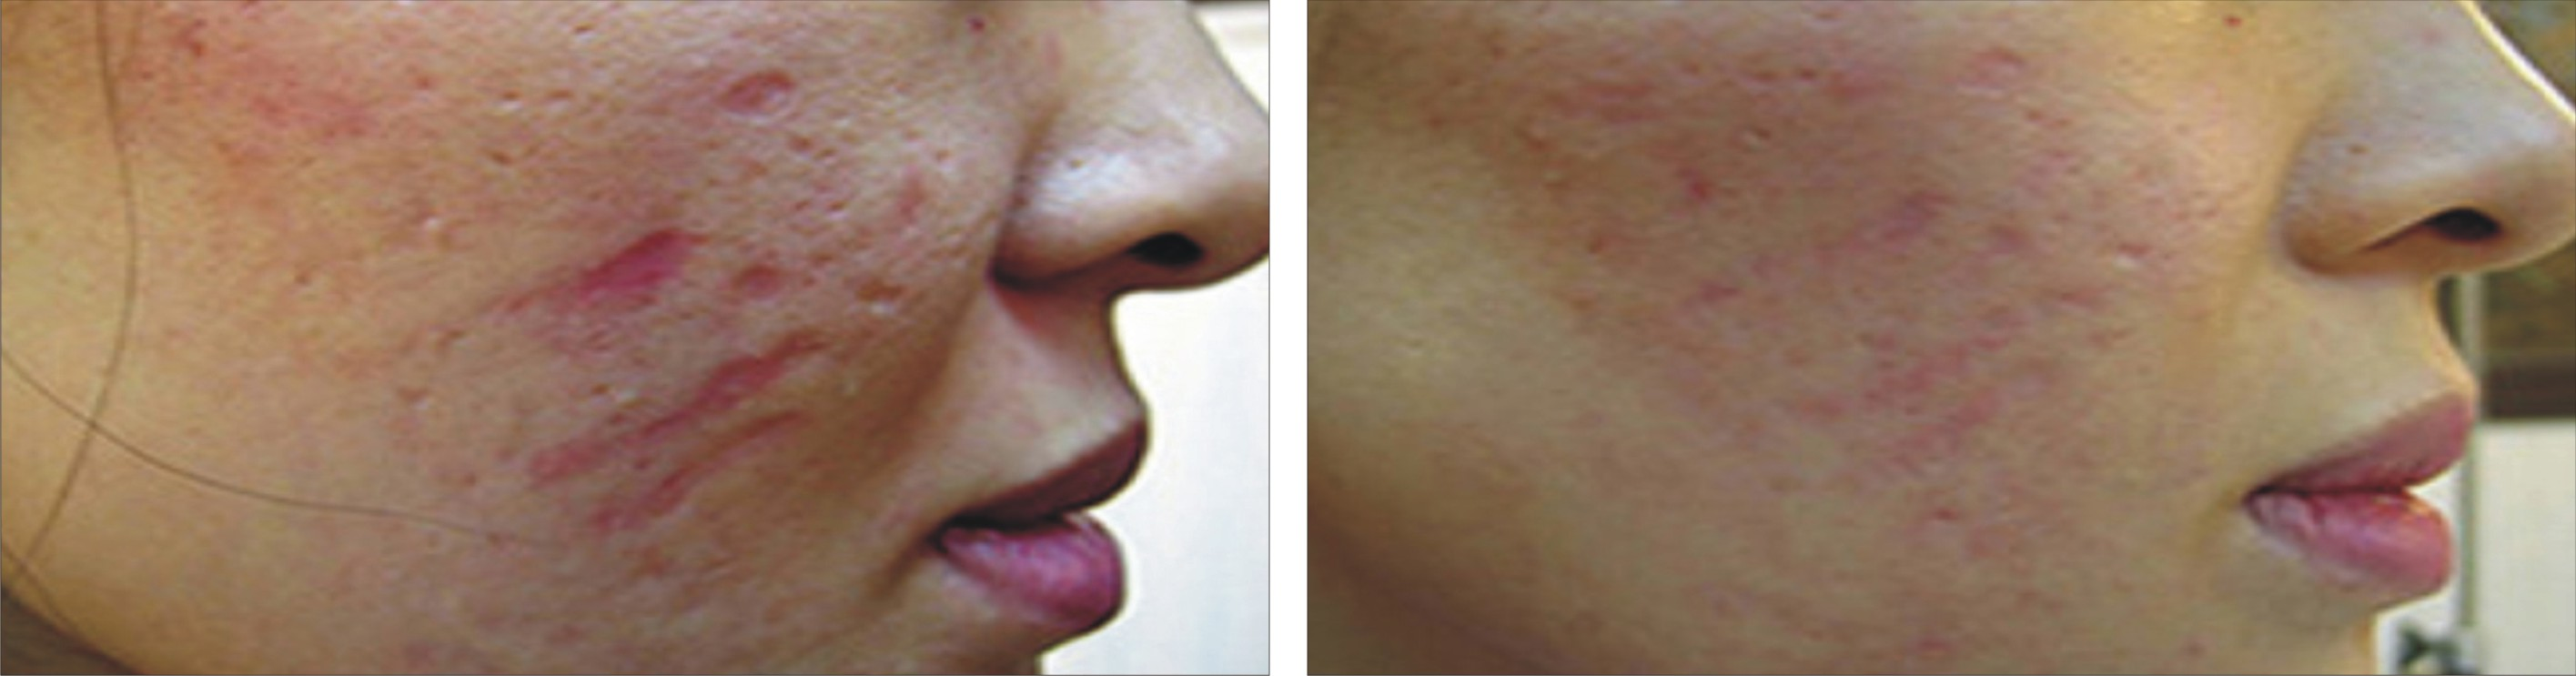 Acne Image Two